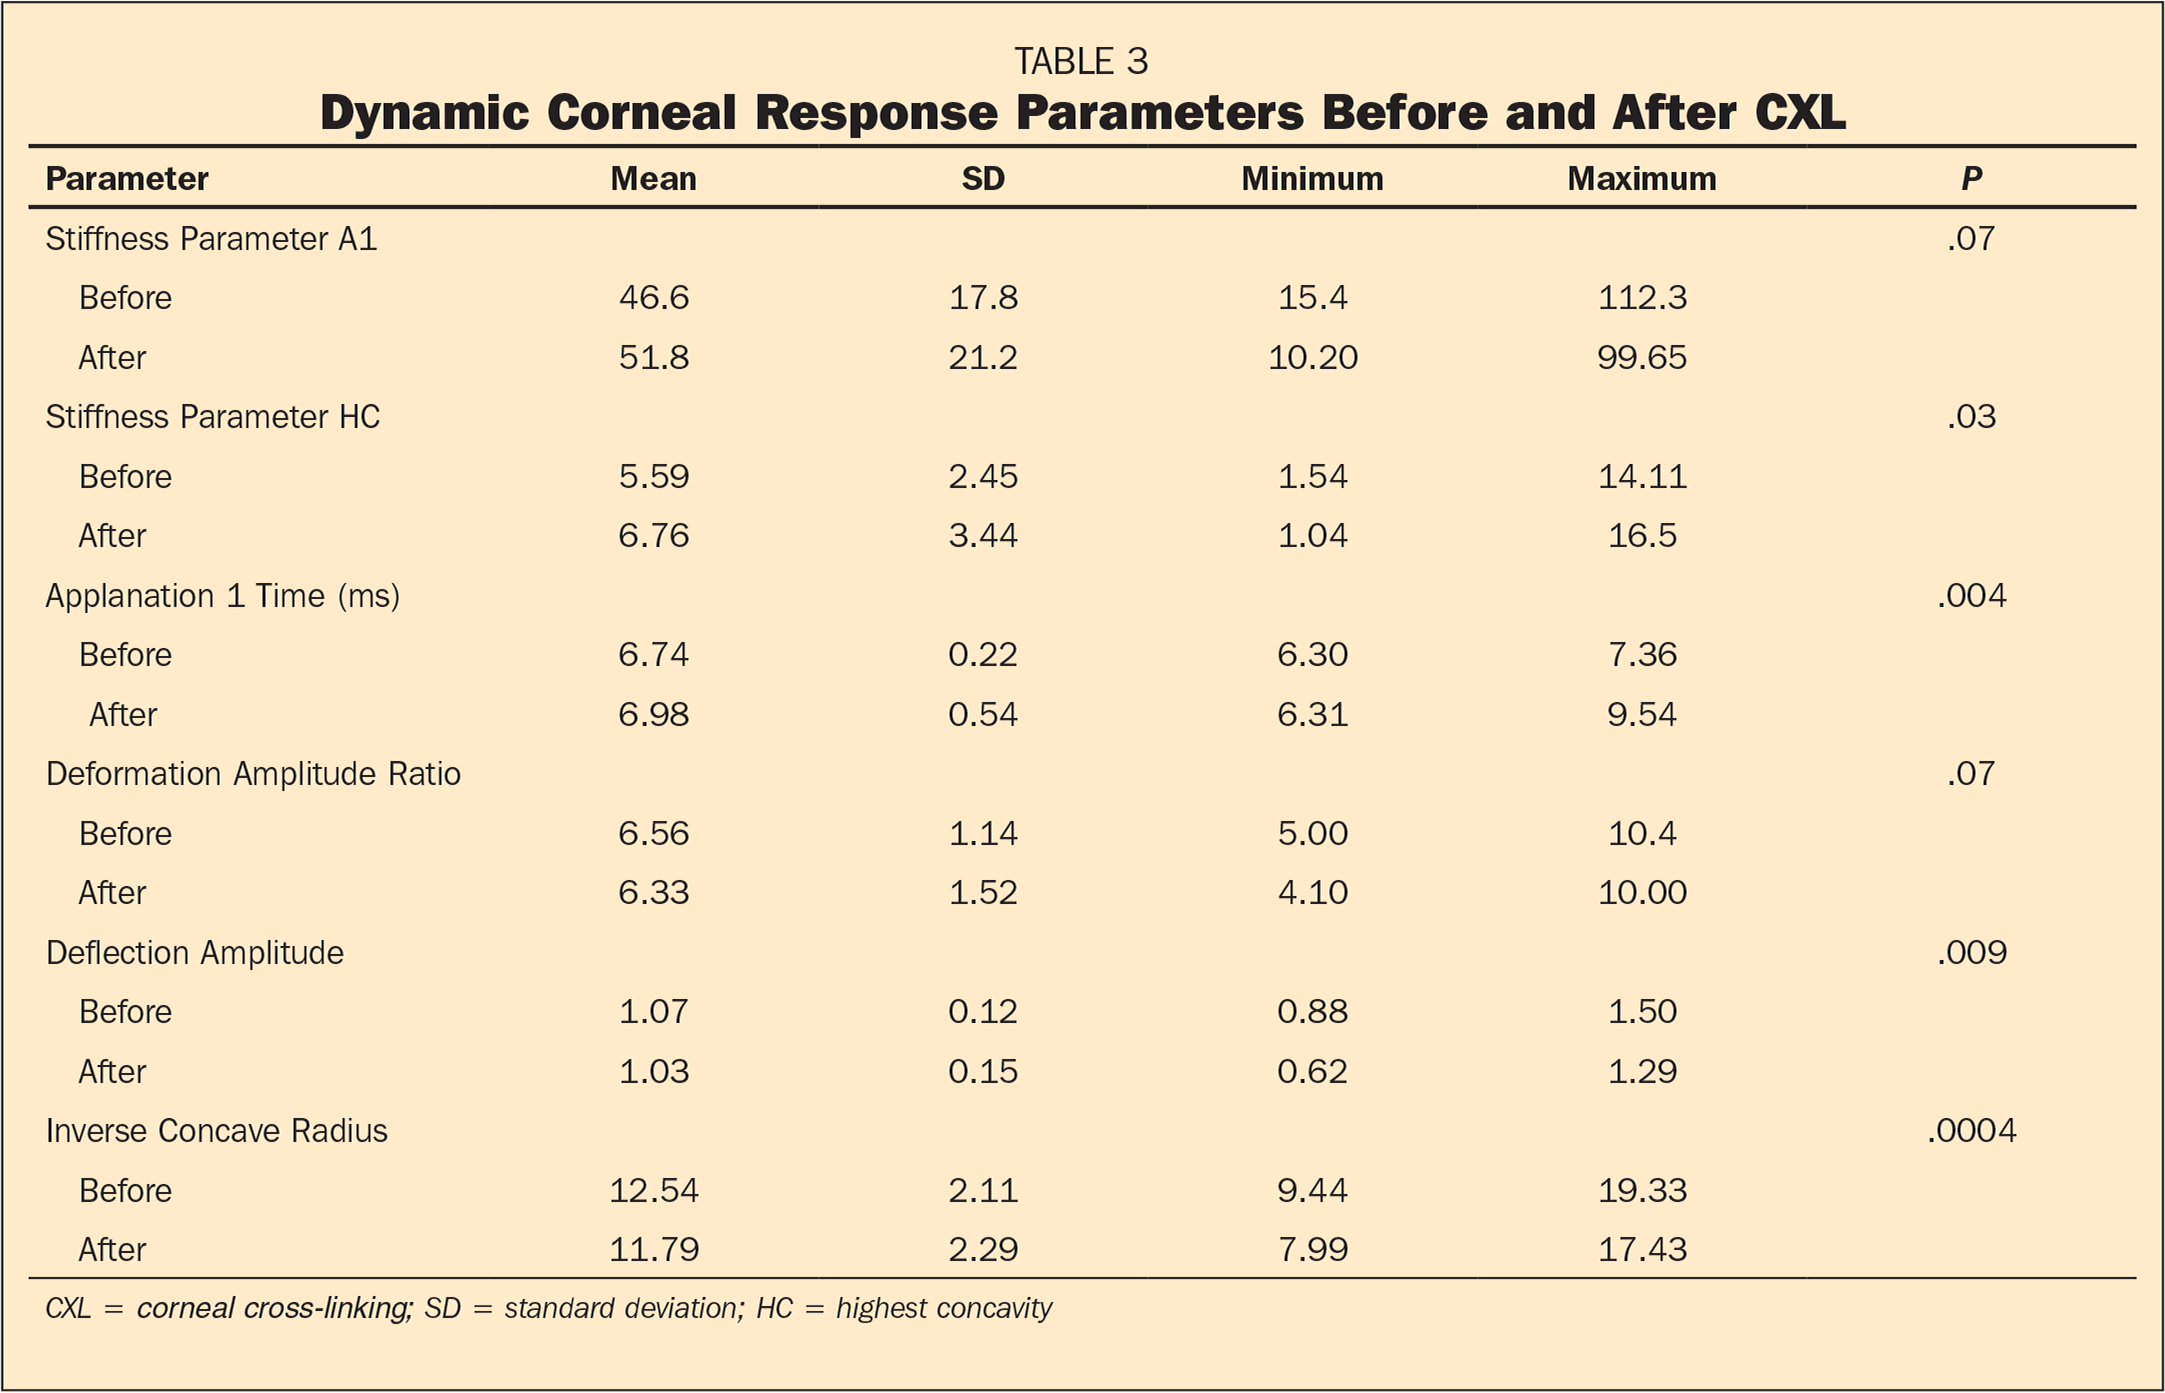 Dynamic Corneal Response Parameters Before and After CXL